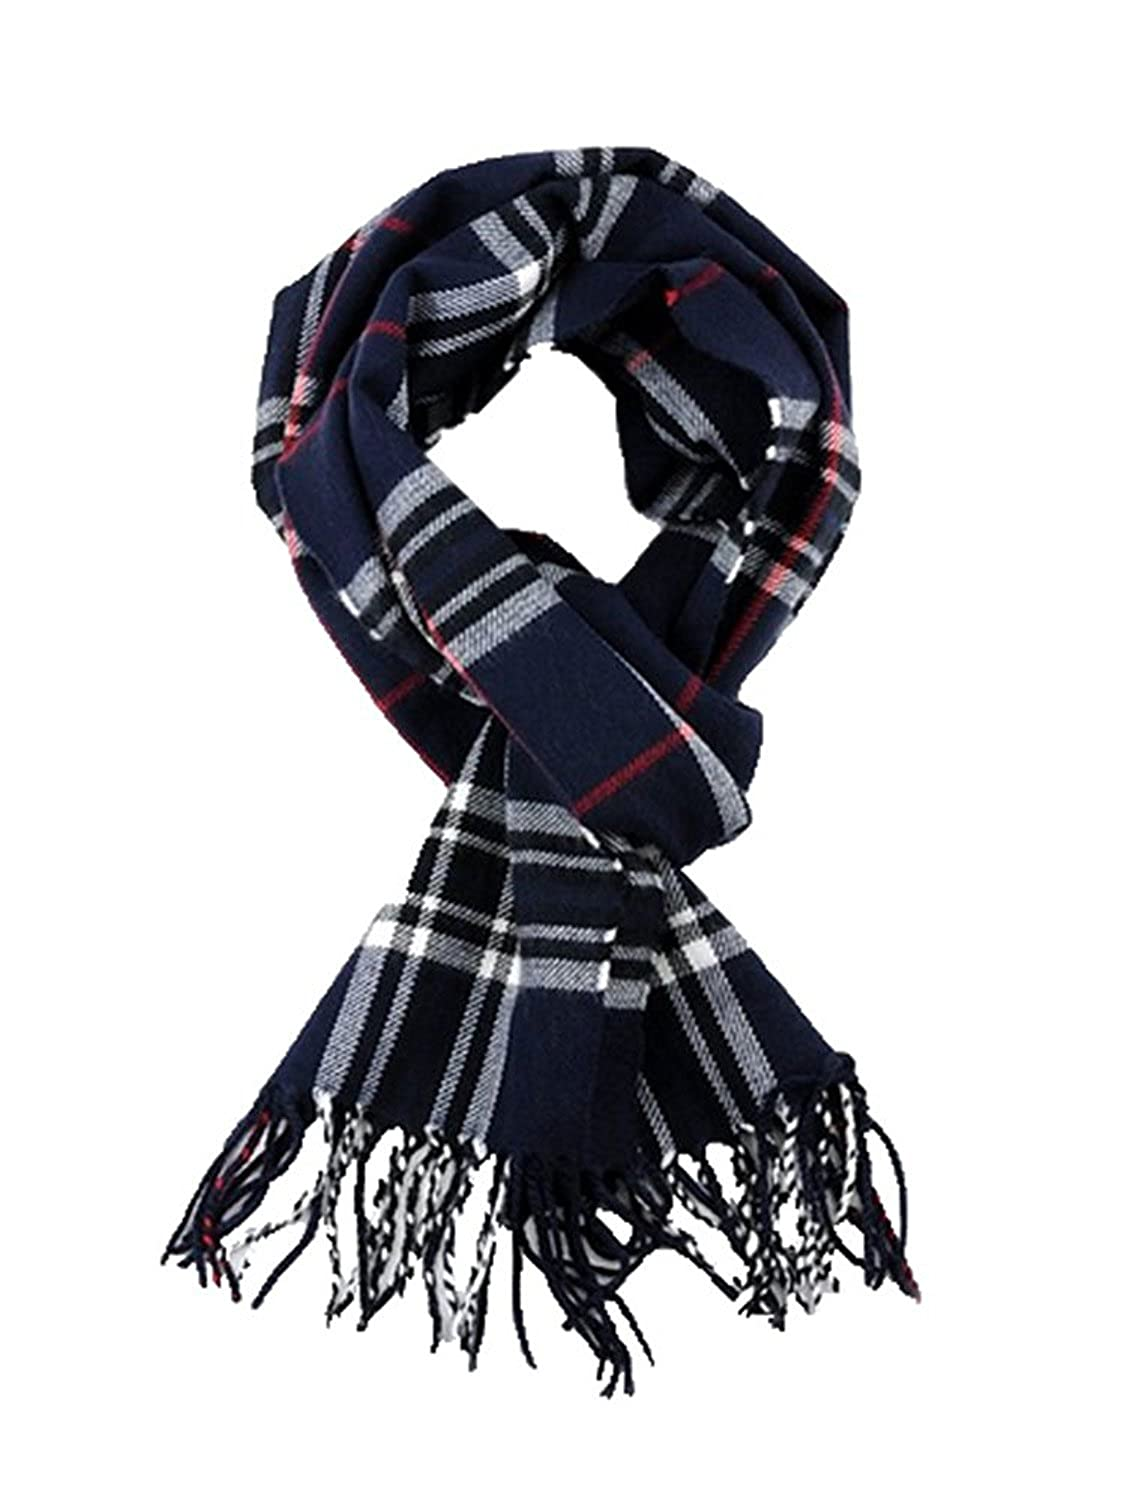 51a7b77426825 SethRoberts-Classic Cashmere Feel Men's Winter Scarf in Rich Plaids (NAVY)  at Amazon Women's Clothing store: Fashion Scarves